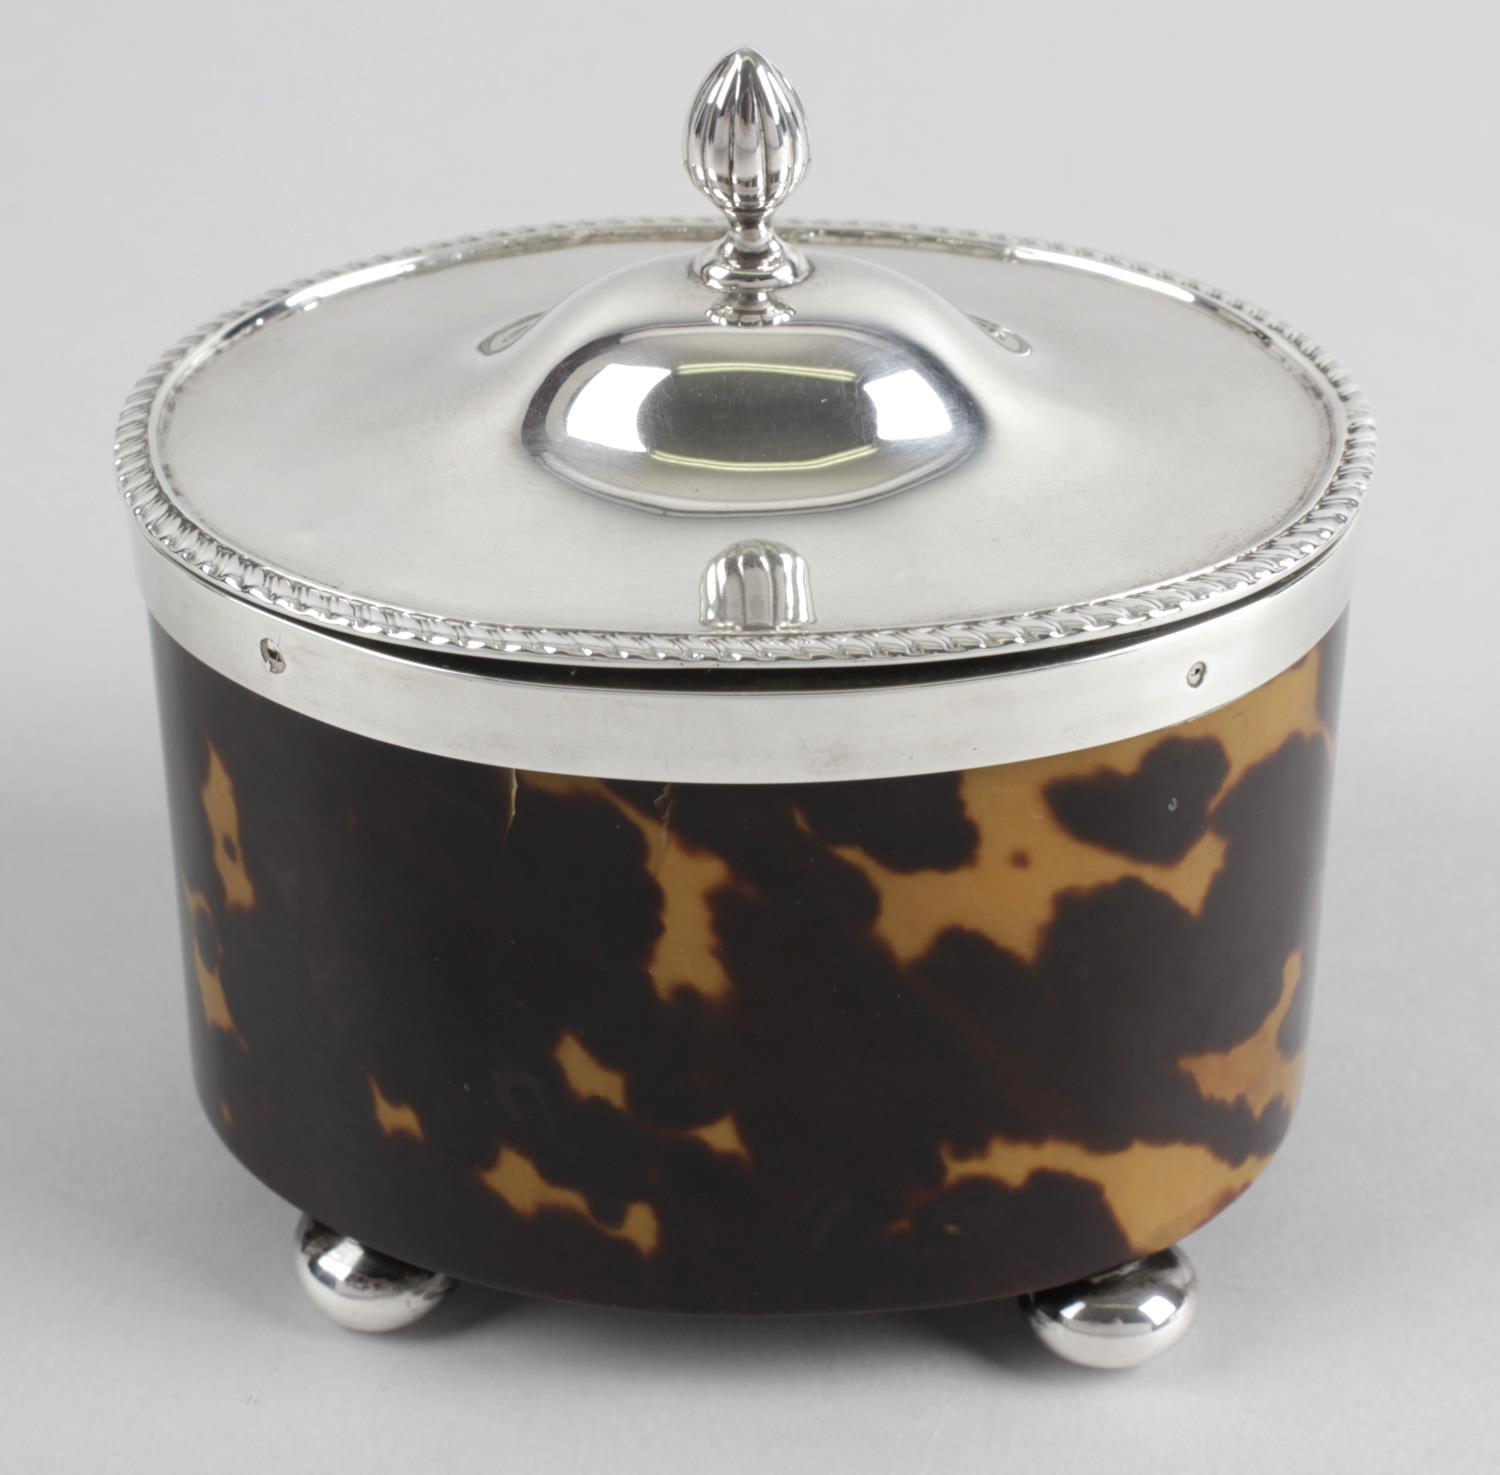 Lot 36 - An Edwardian silver mounted and tortoiseshell veneer tea caddy of oval form,